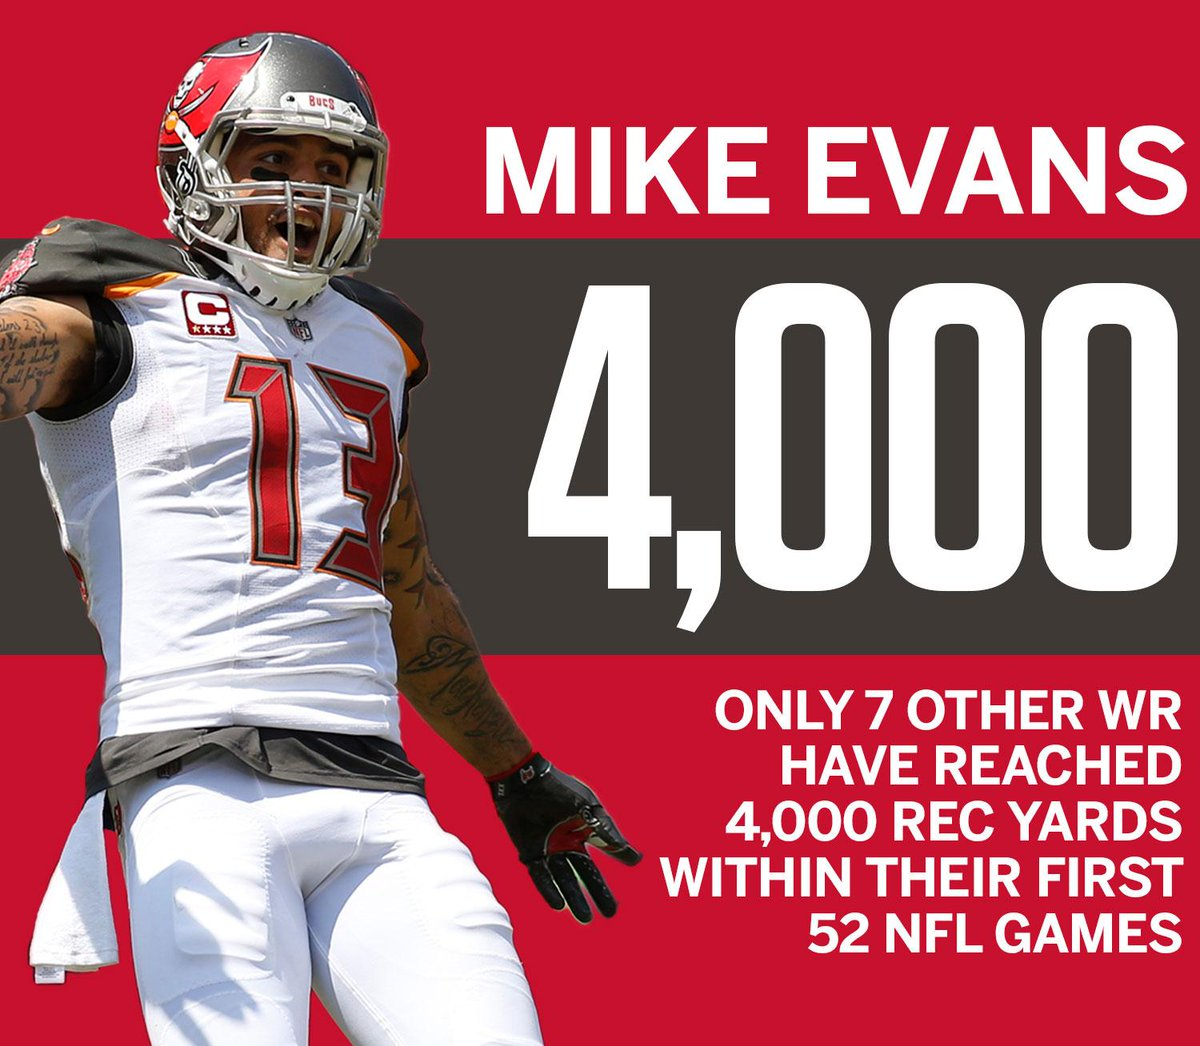 Mike Evans joins OBJ, Julio Jones, A.J. Green, Anquan Boldin, Torry Holt, Randy Moss and Jerry Rice.